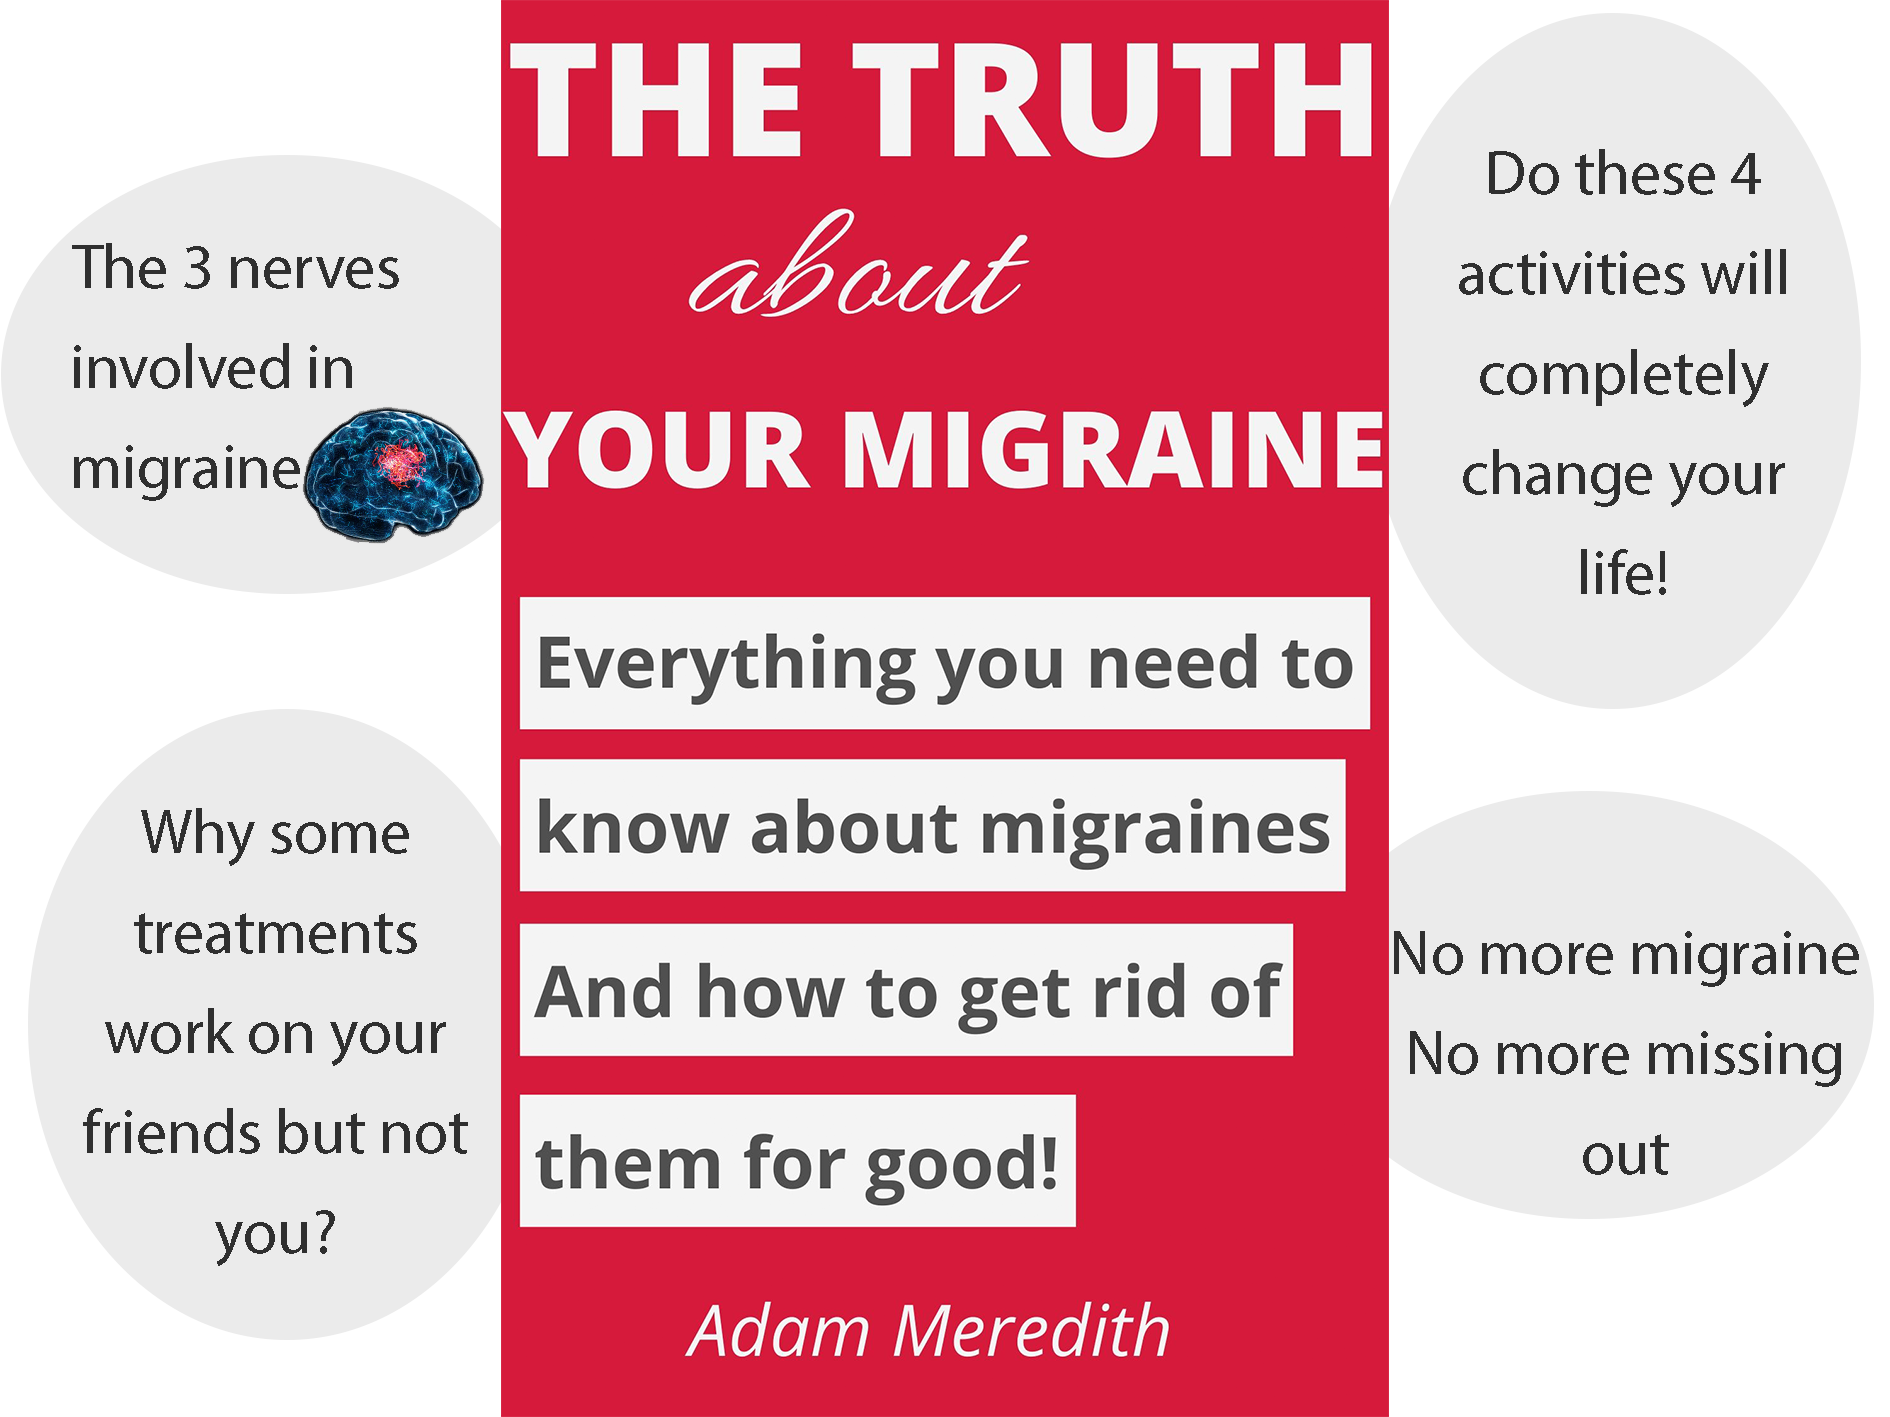 The truth about your migraine